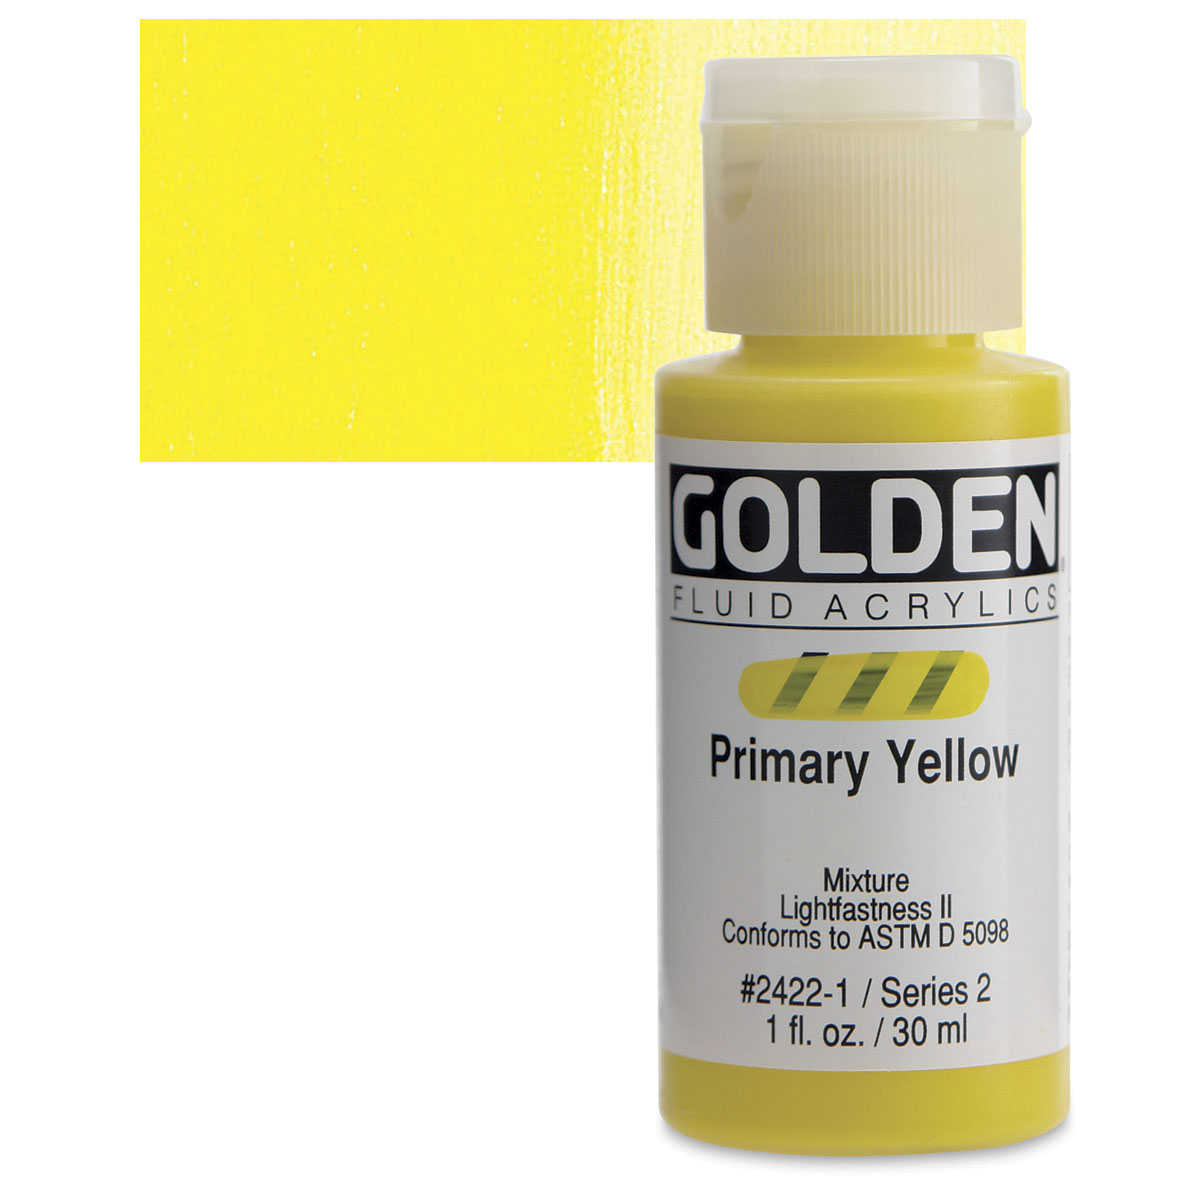 006384531 golden fluid acrylics blick art materials